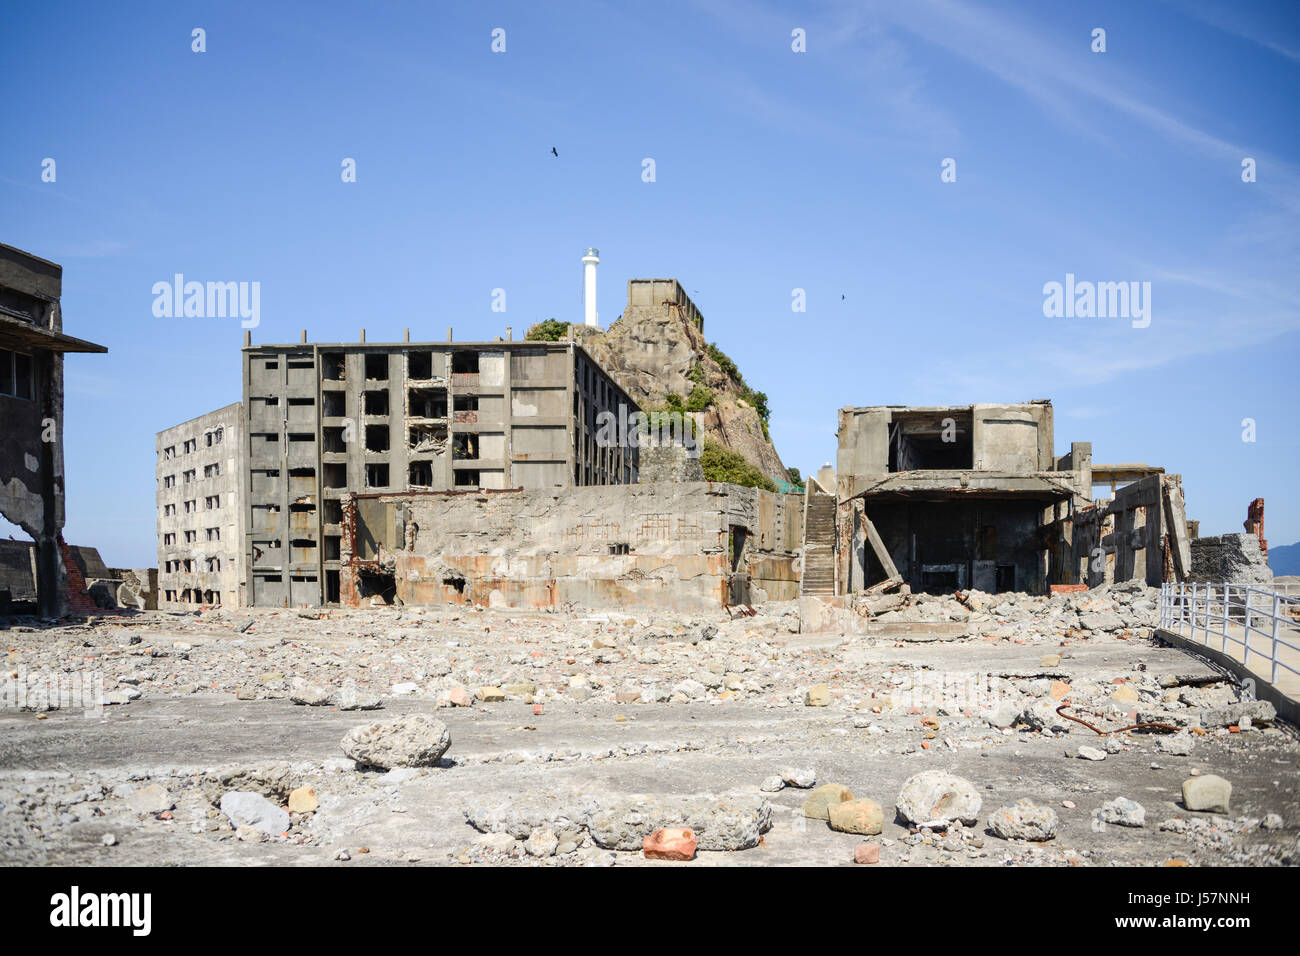 Nagasaki, Japan - March 17, 2016: Hashima island also known as the Battleship Island in Nagasaki, Japan. Buildings - Stock Image